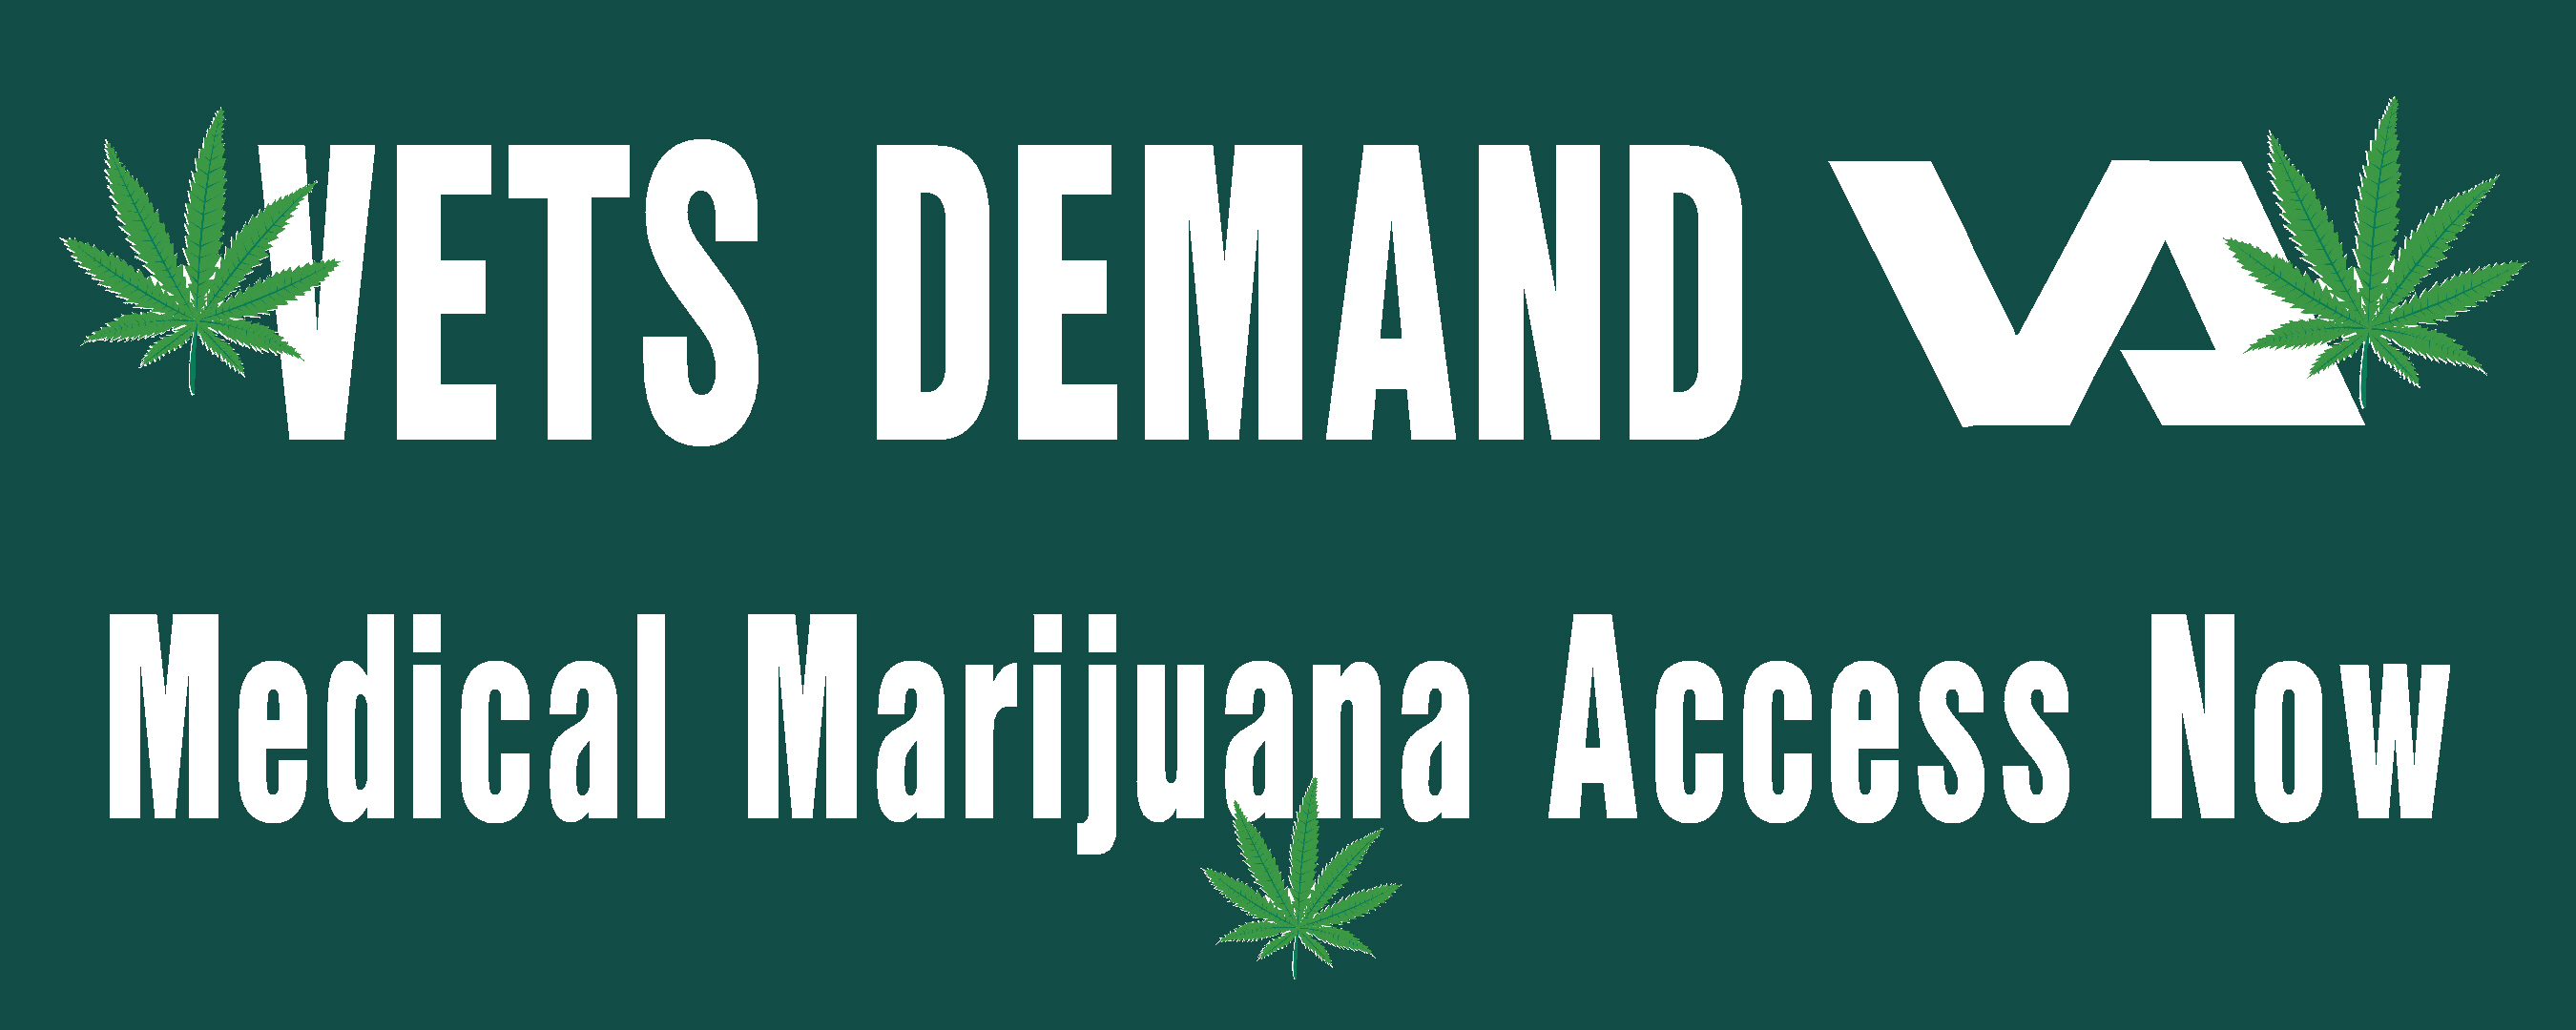 VA medical marijuana access